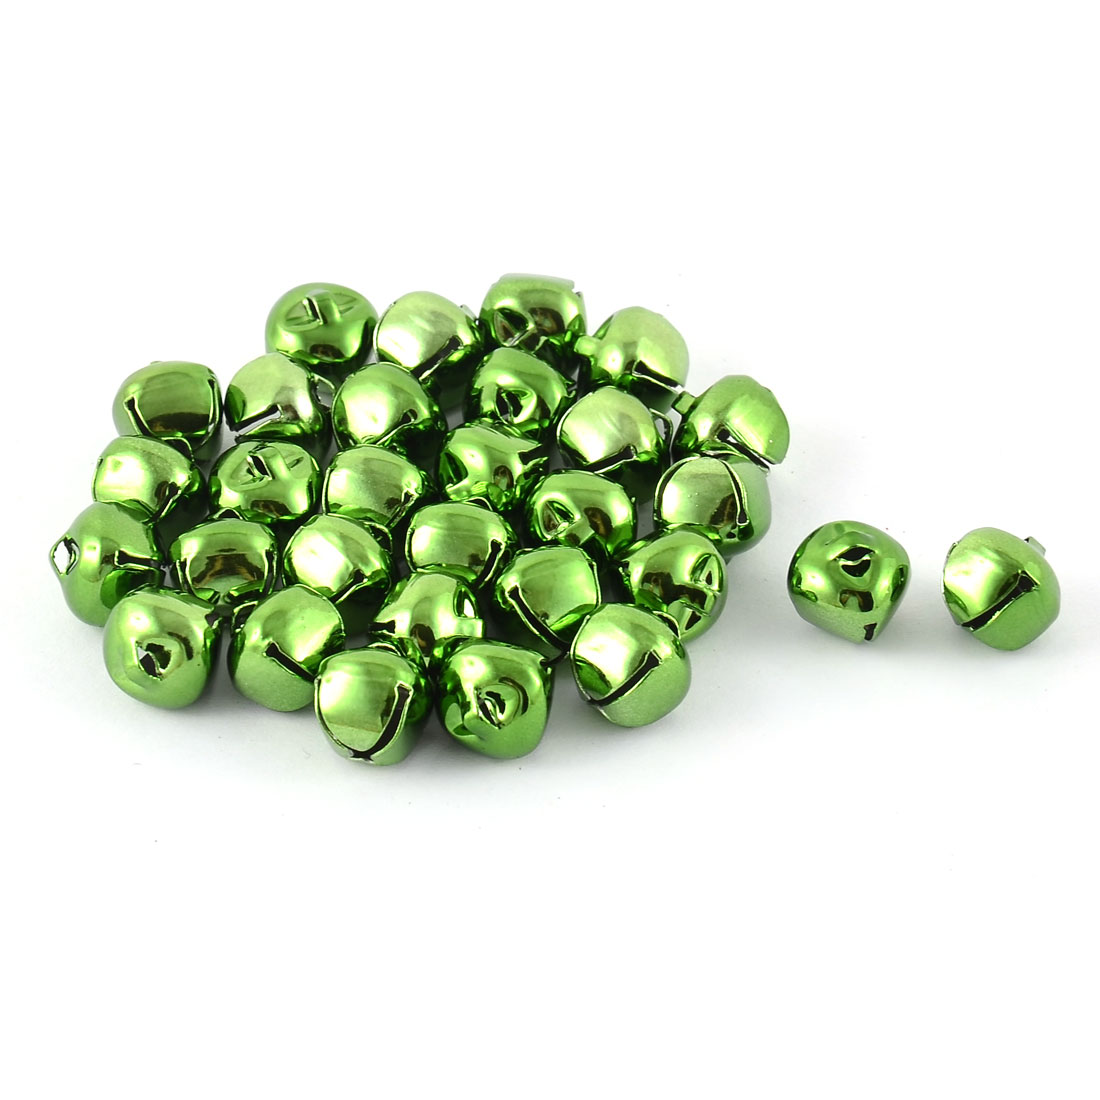 UXCELL Tree Decor Metal Round Shape Christmas Bell Hanging Decoration Lime Green 30 Pcs(China (Mainland))